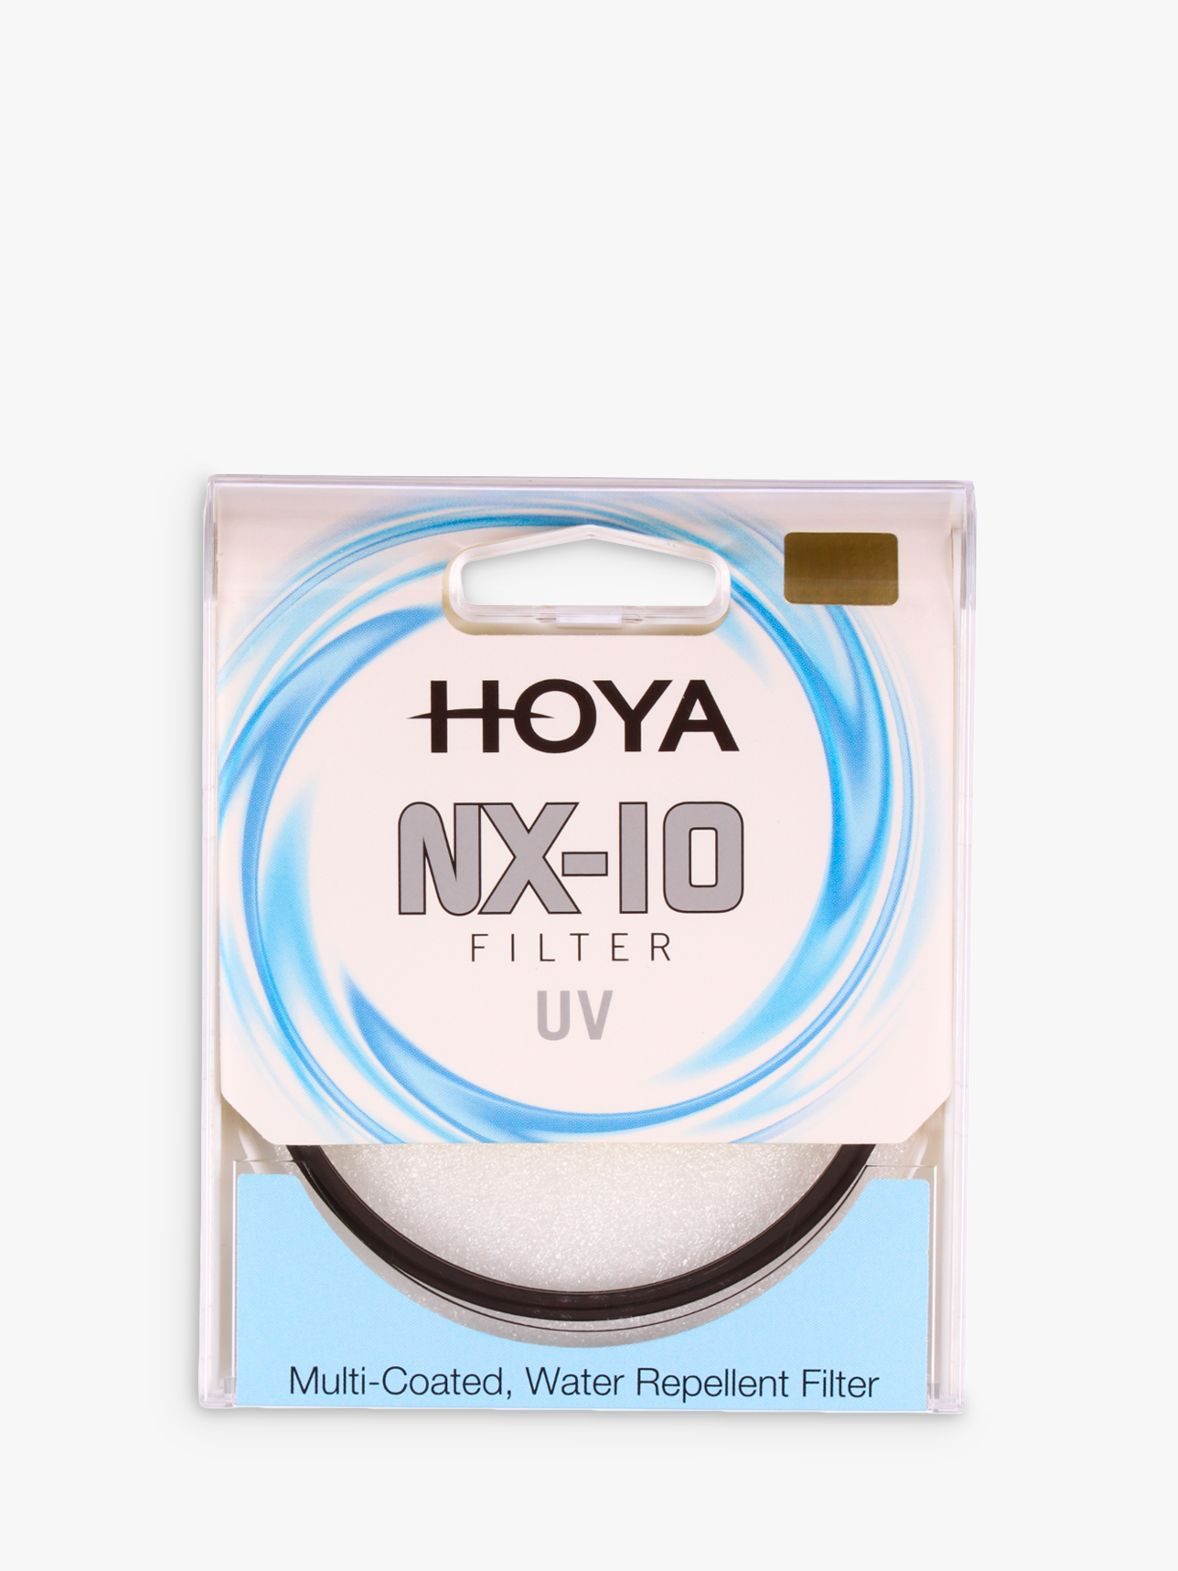 Hoya Hoya NX-10 UV Lens Filter, 52mm